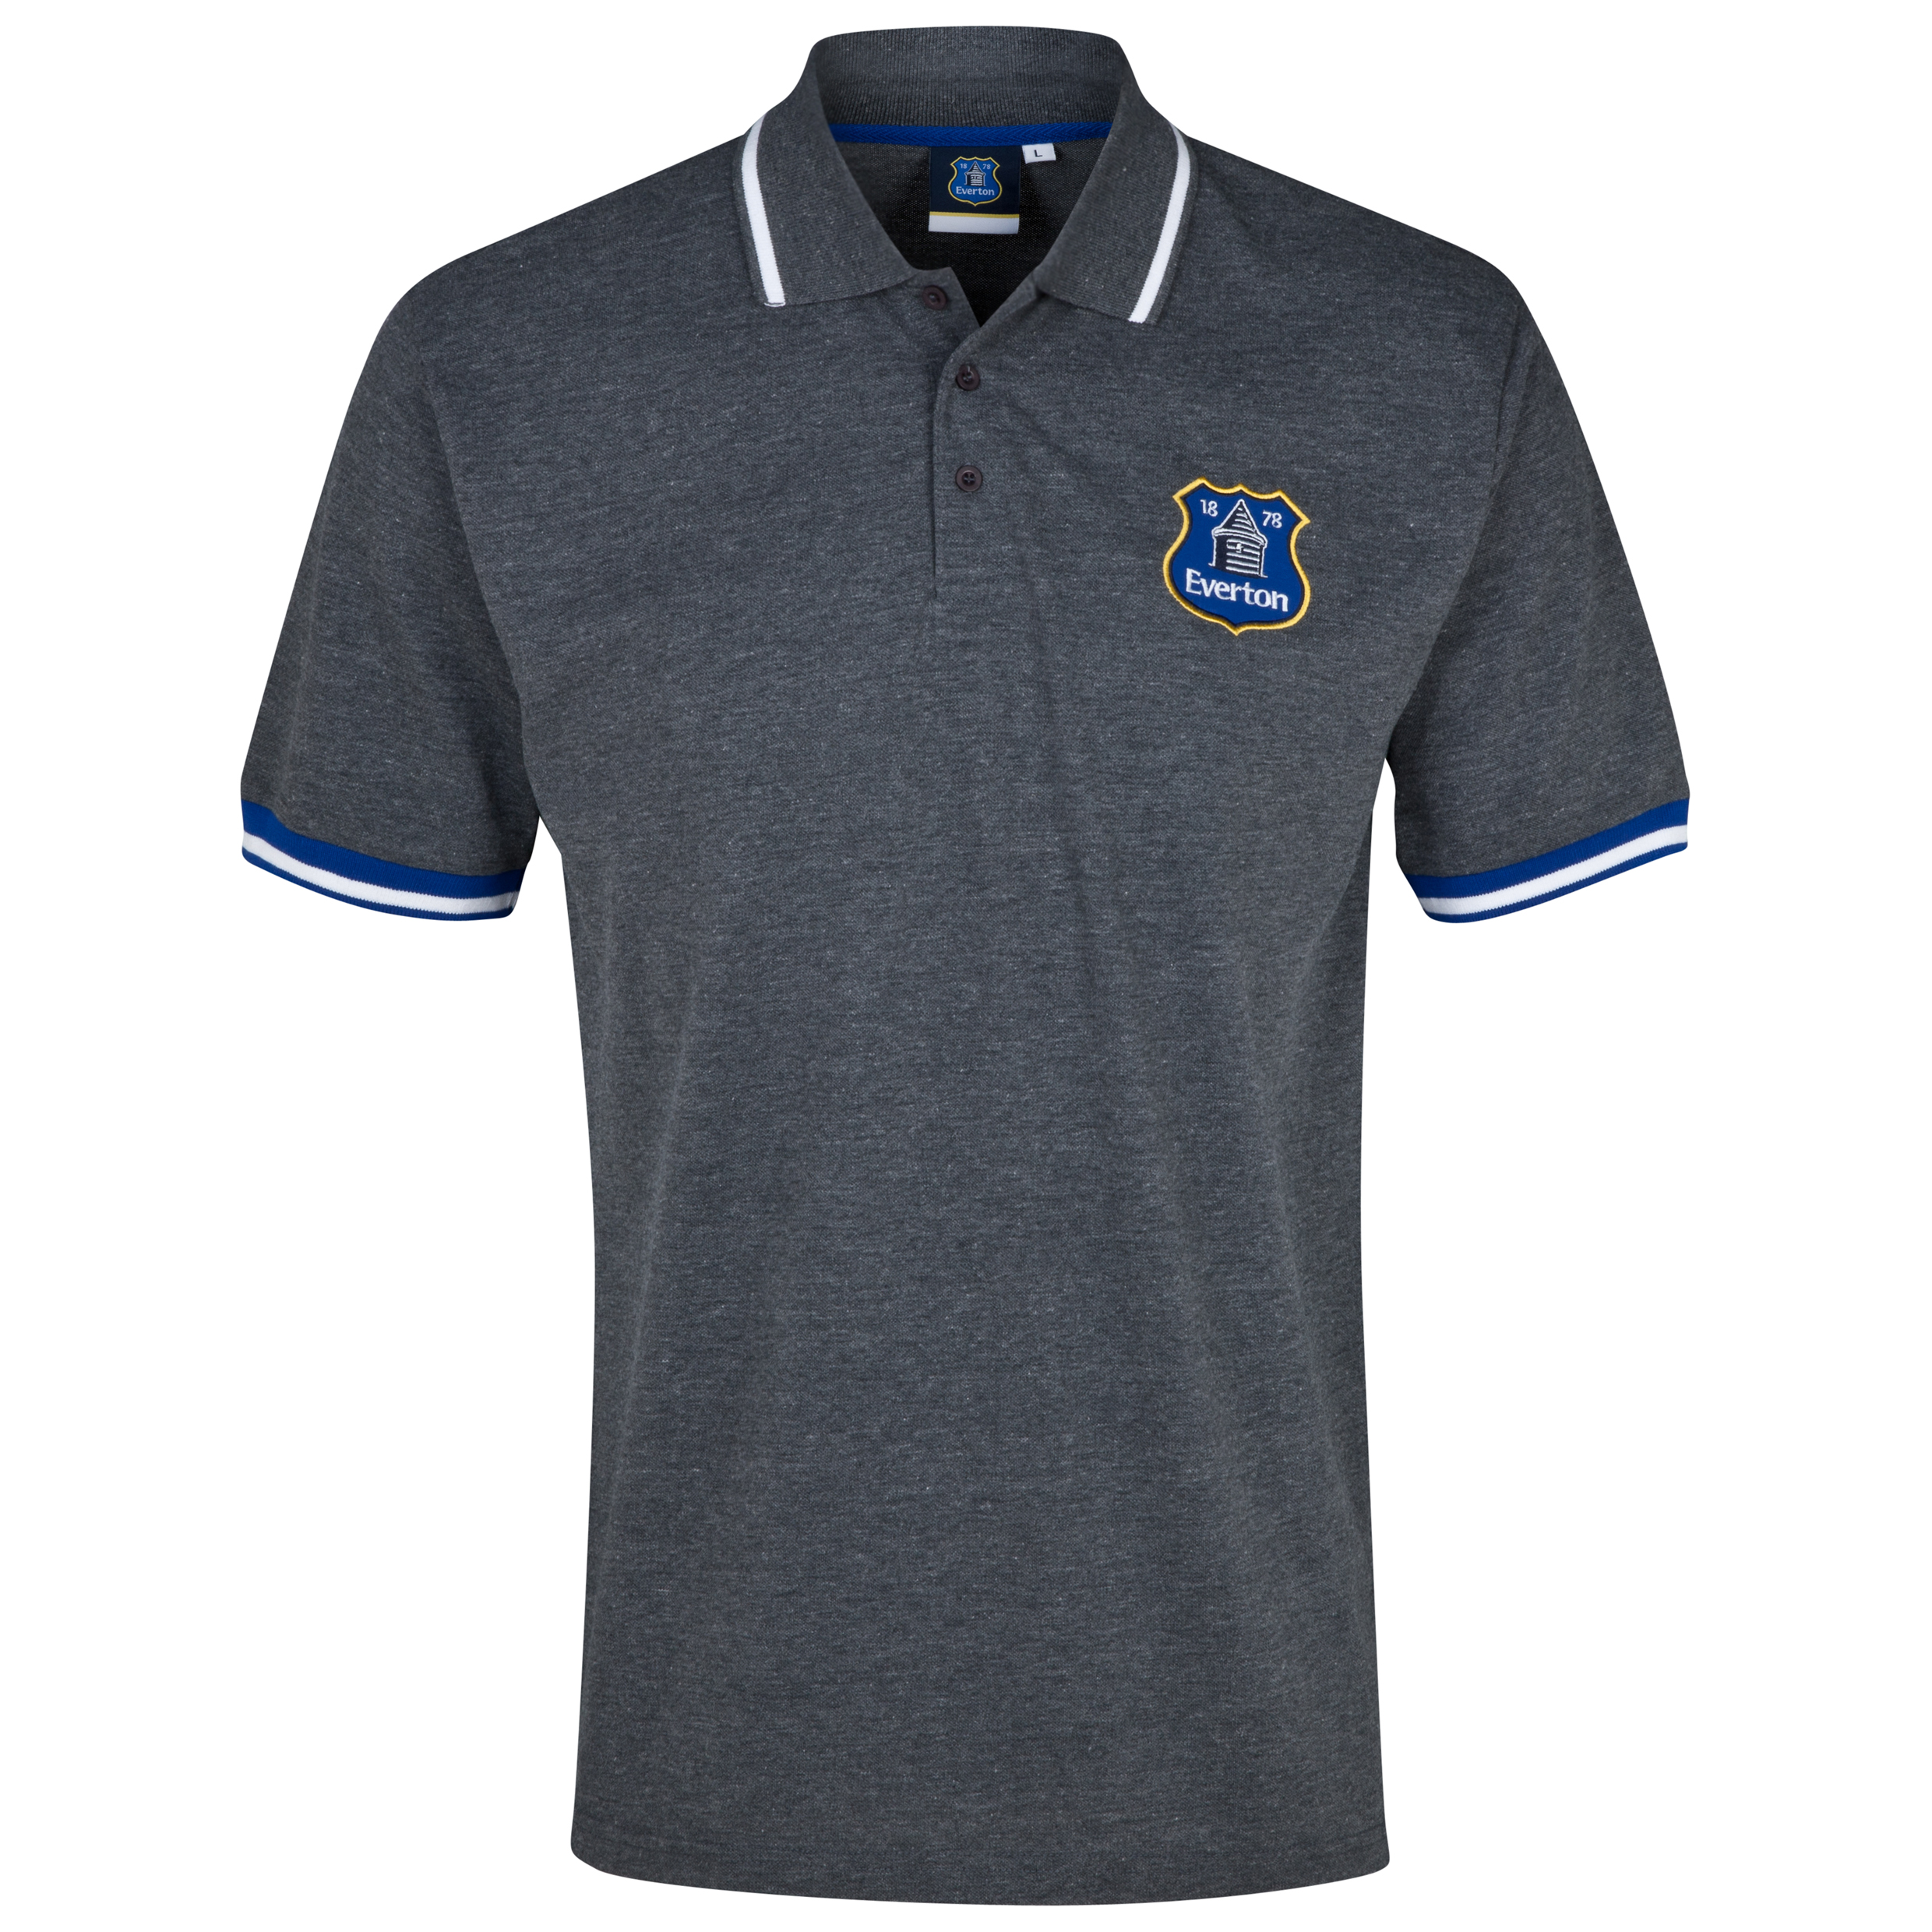 Everton Essentials Stadia Polo Shirt - Mens Charcoal